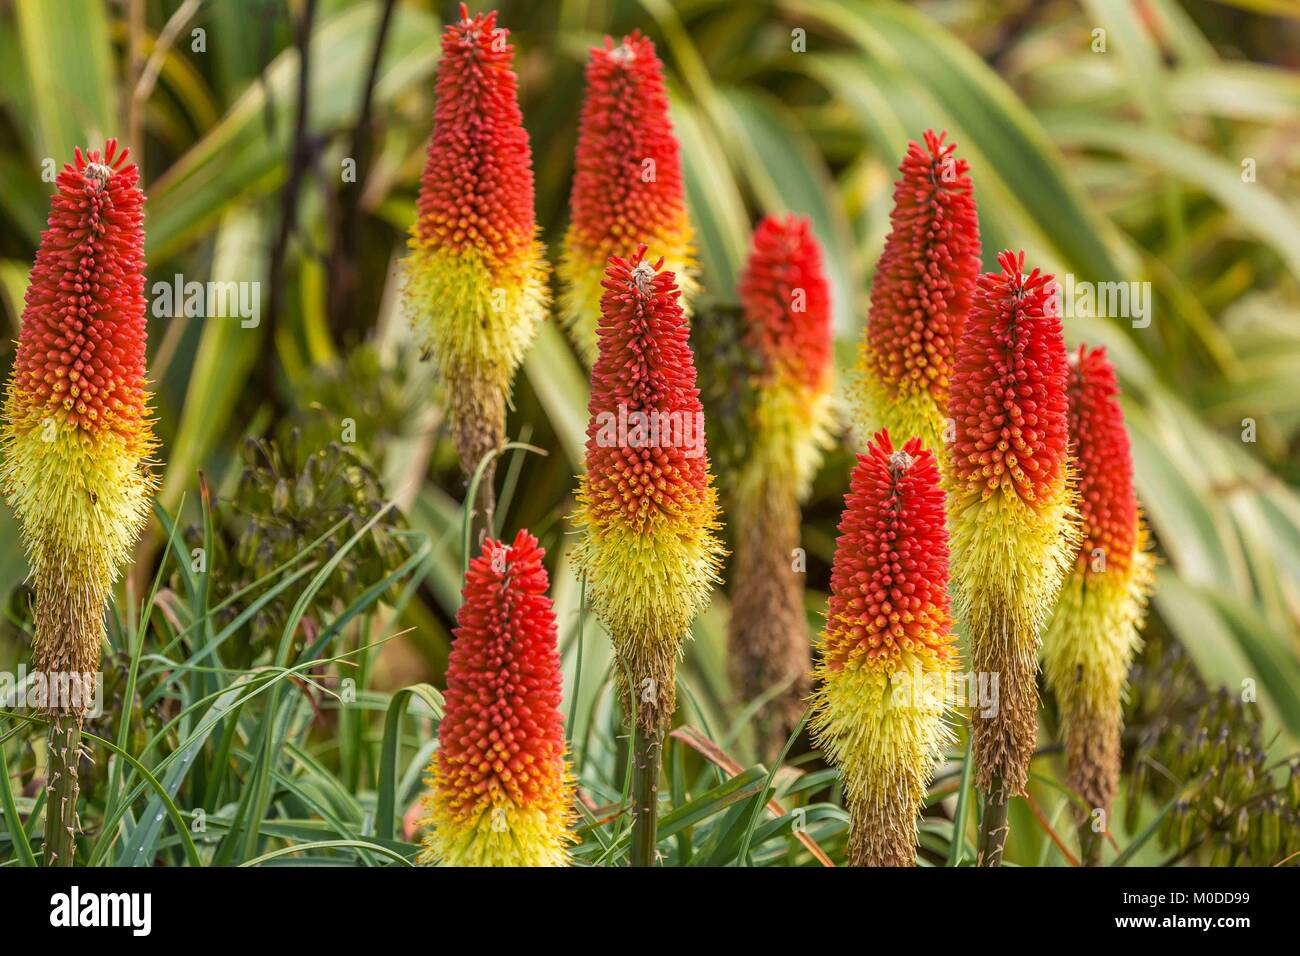 Red hot pokers in a yellow and red perennial display. - Stock Image